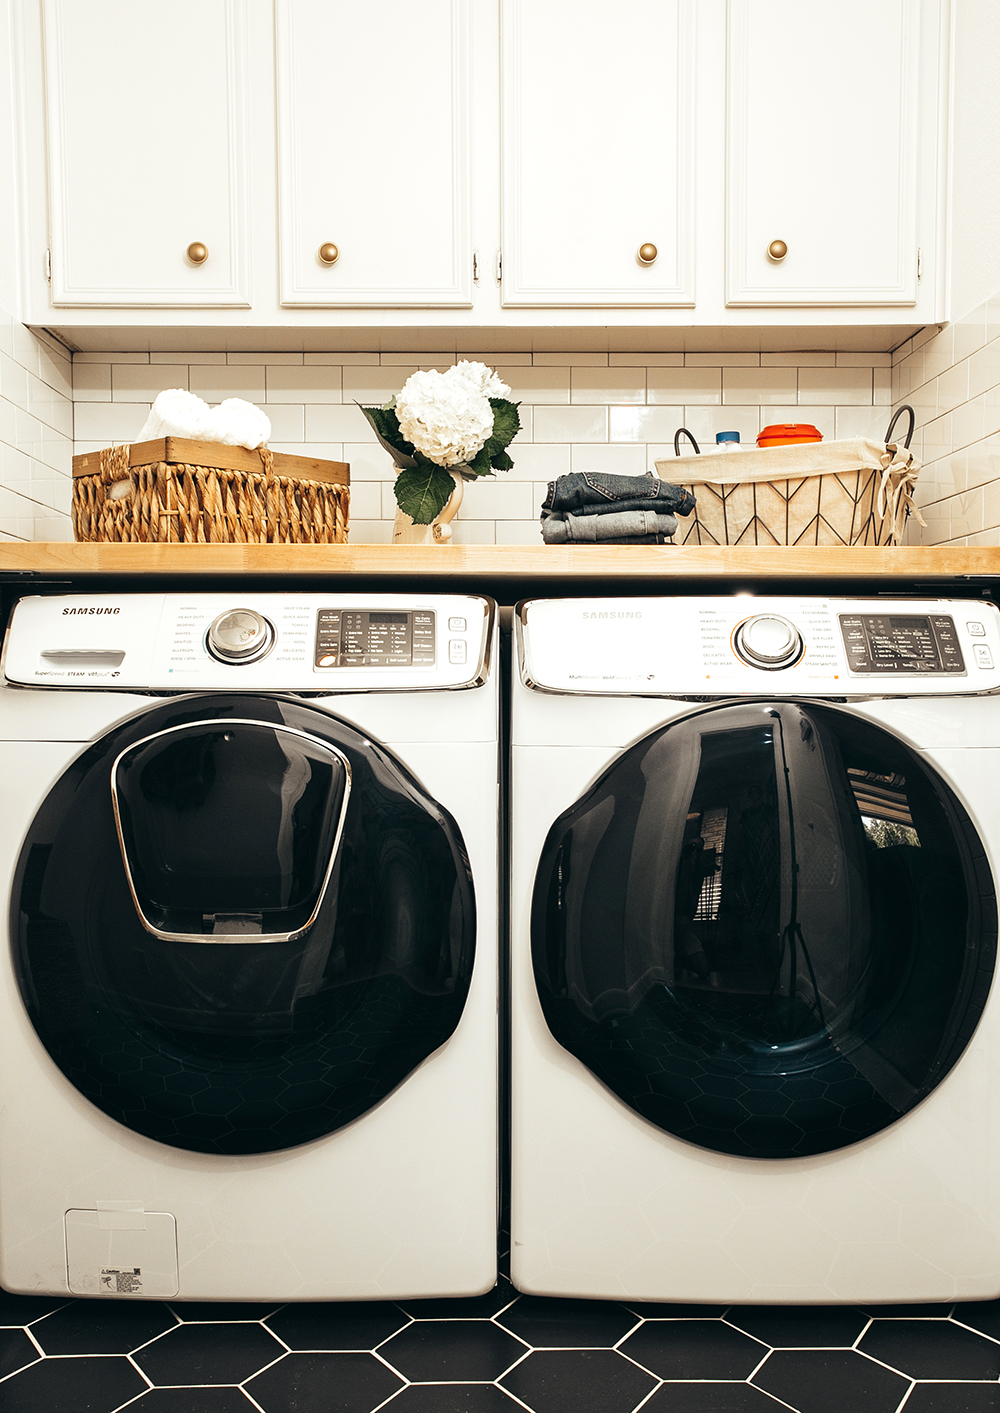 livvyland-blog-olivia-watson-home-decor-interior-design-before-after-laundry-room-makeover-renovation-update-3